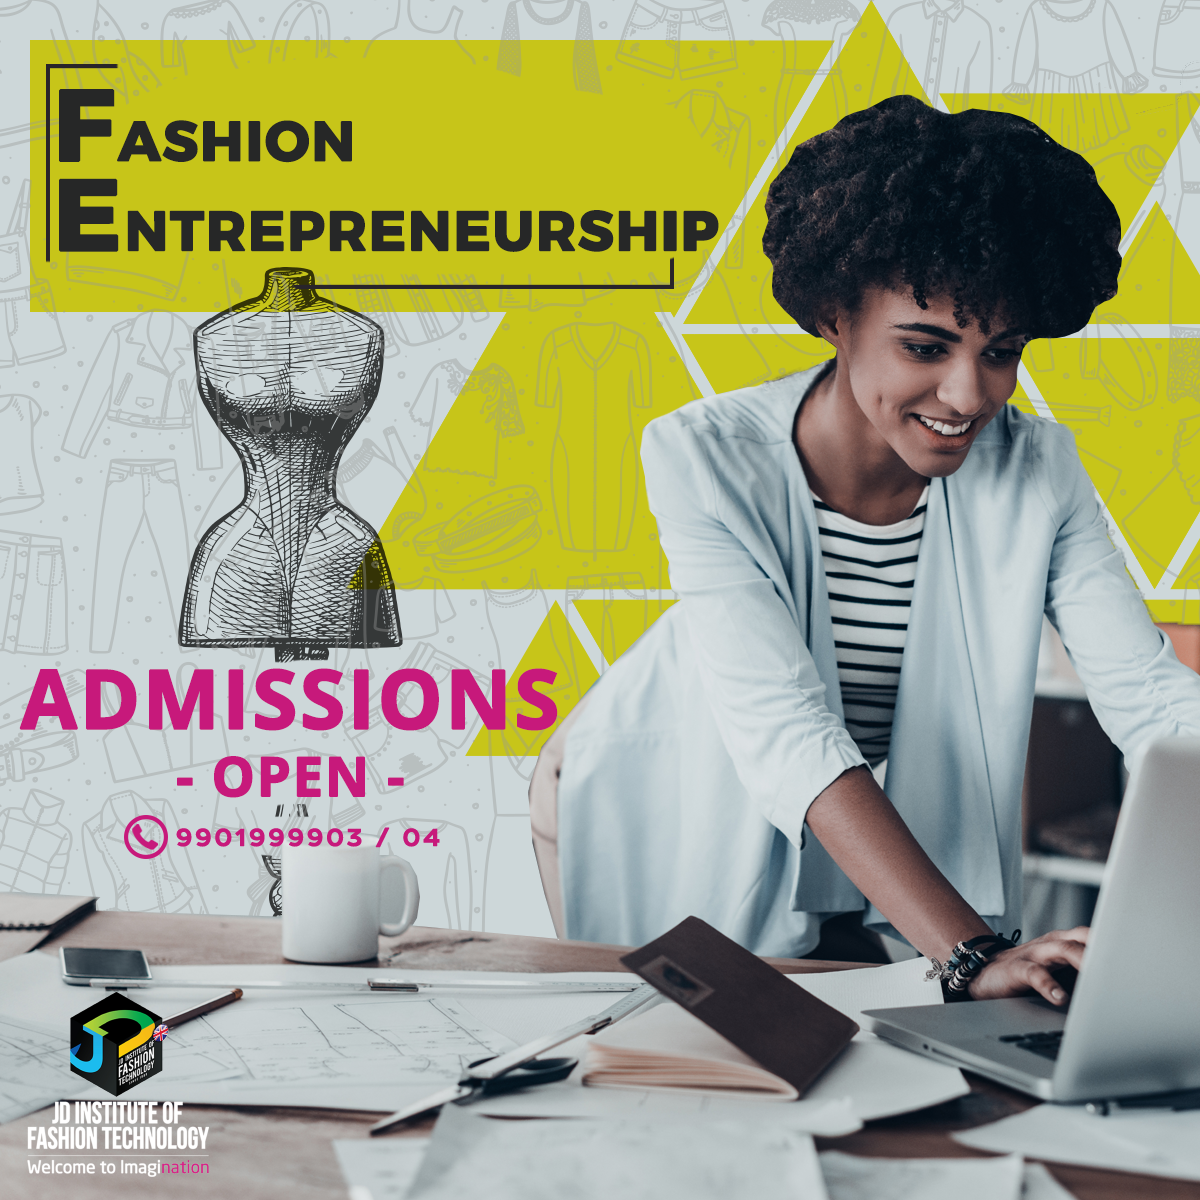 Pg Diploma In Fashion Communication 2 Years With Images Fashion Communication Technology Fashion Entrepreneurship